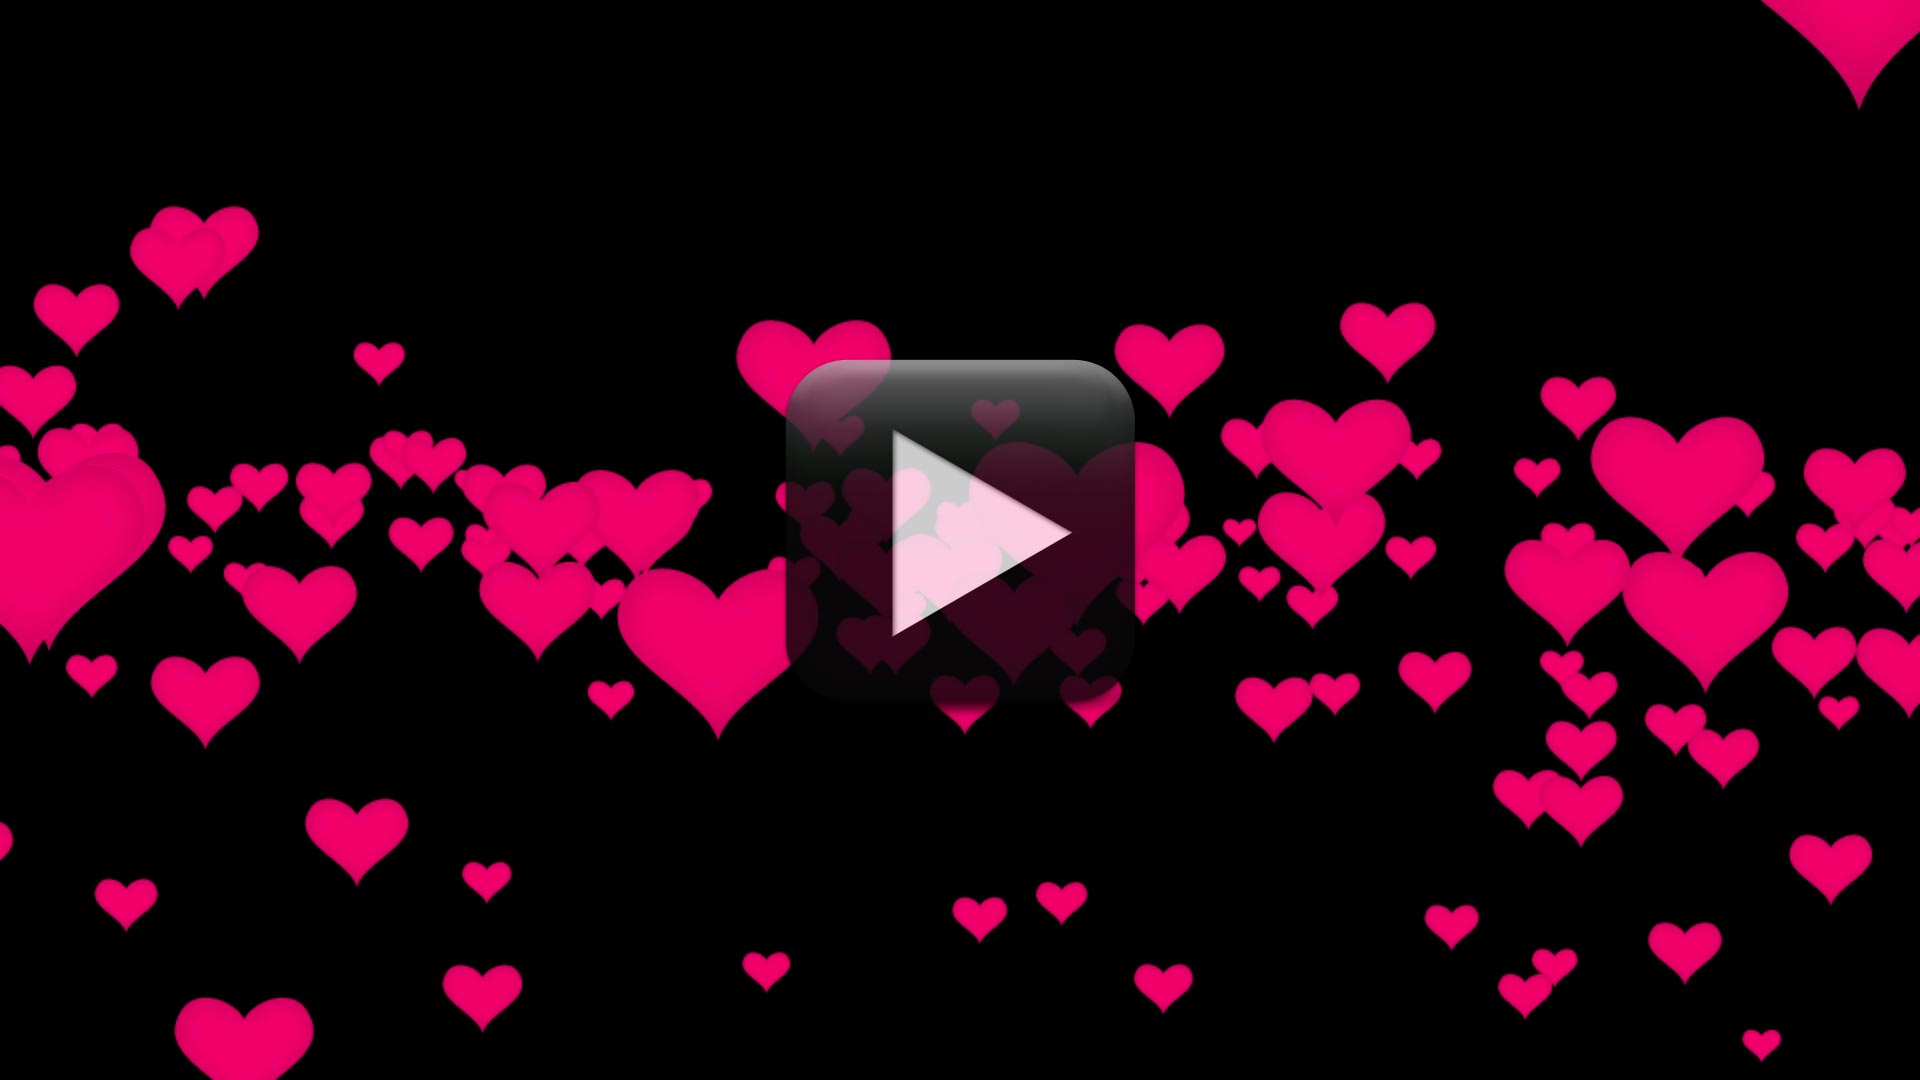 Free Love Motion Graphics Background HD